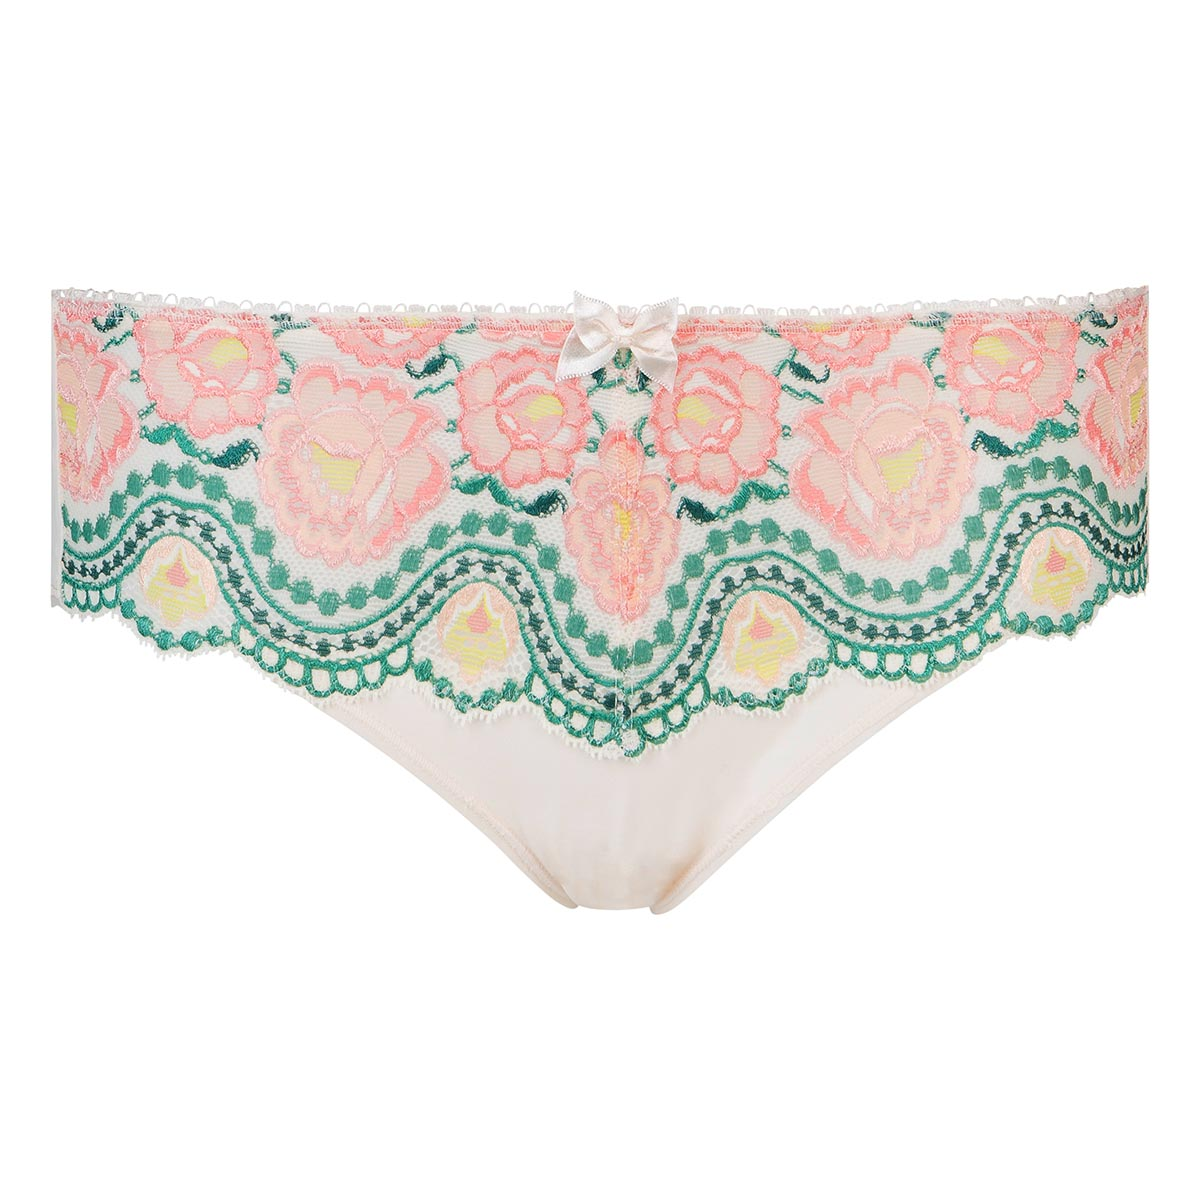 Midi knickers in printed floral lace - Flower Elegance, , PLAYTEX